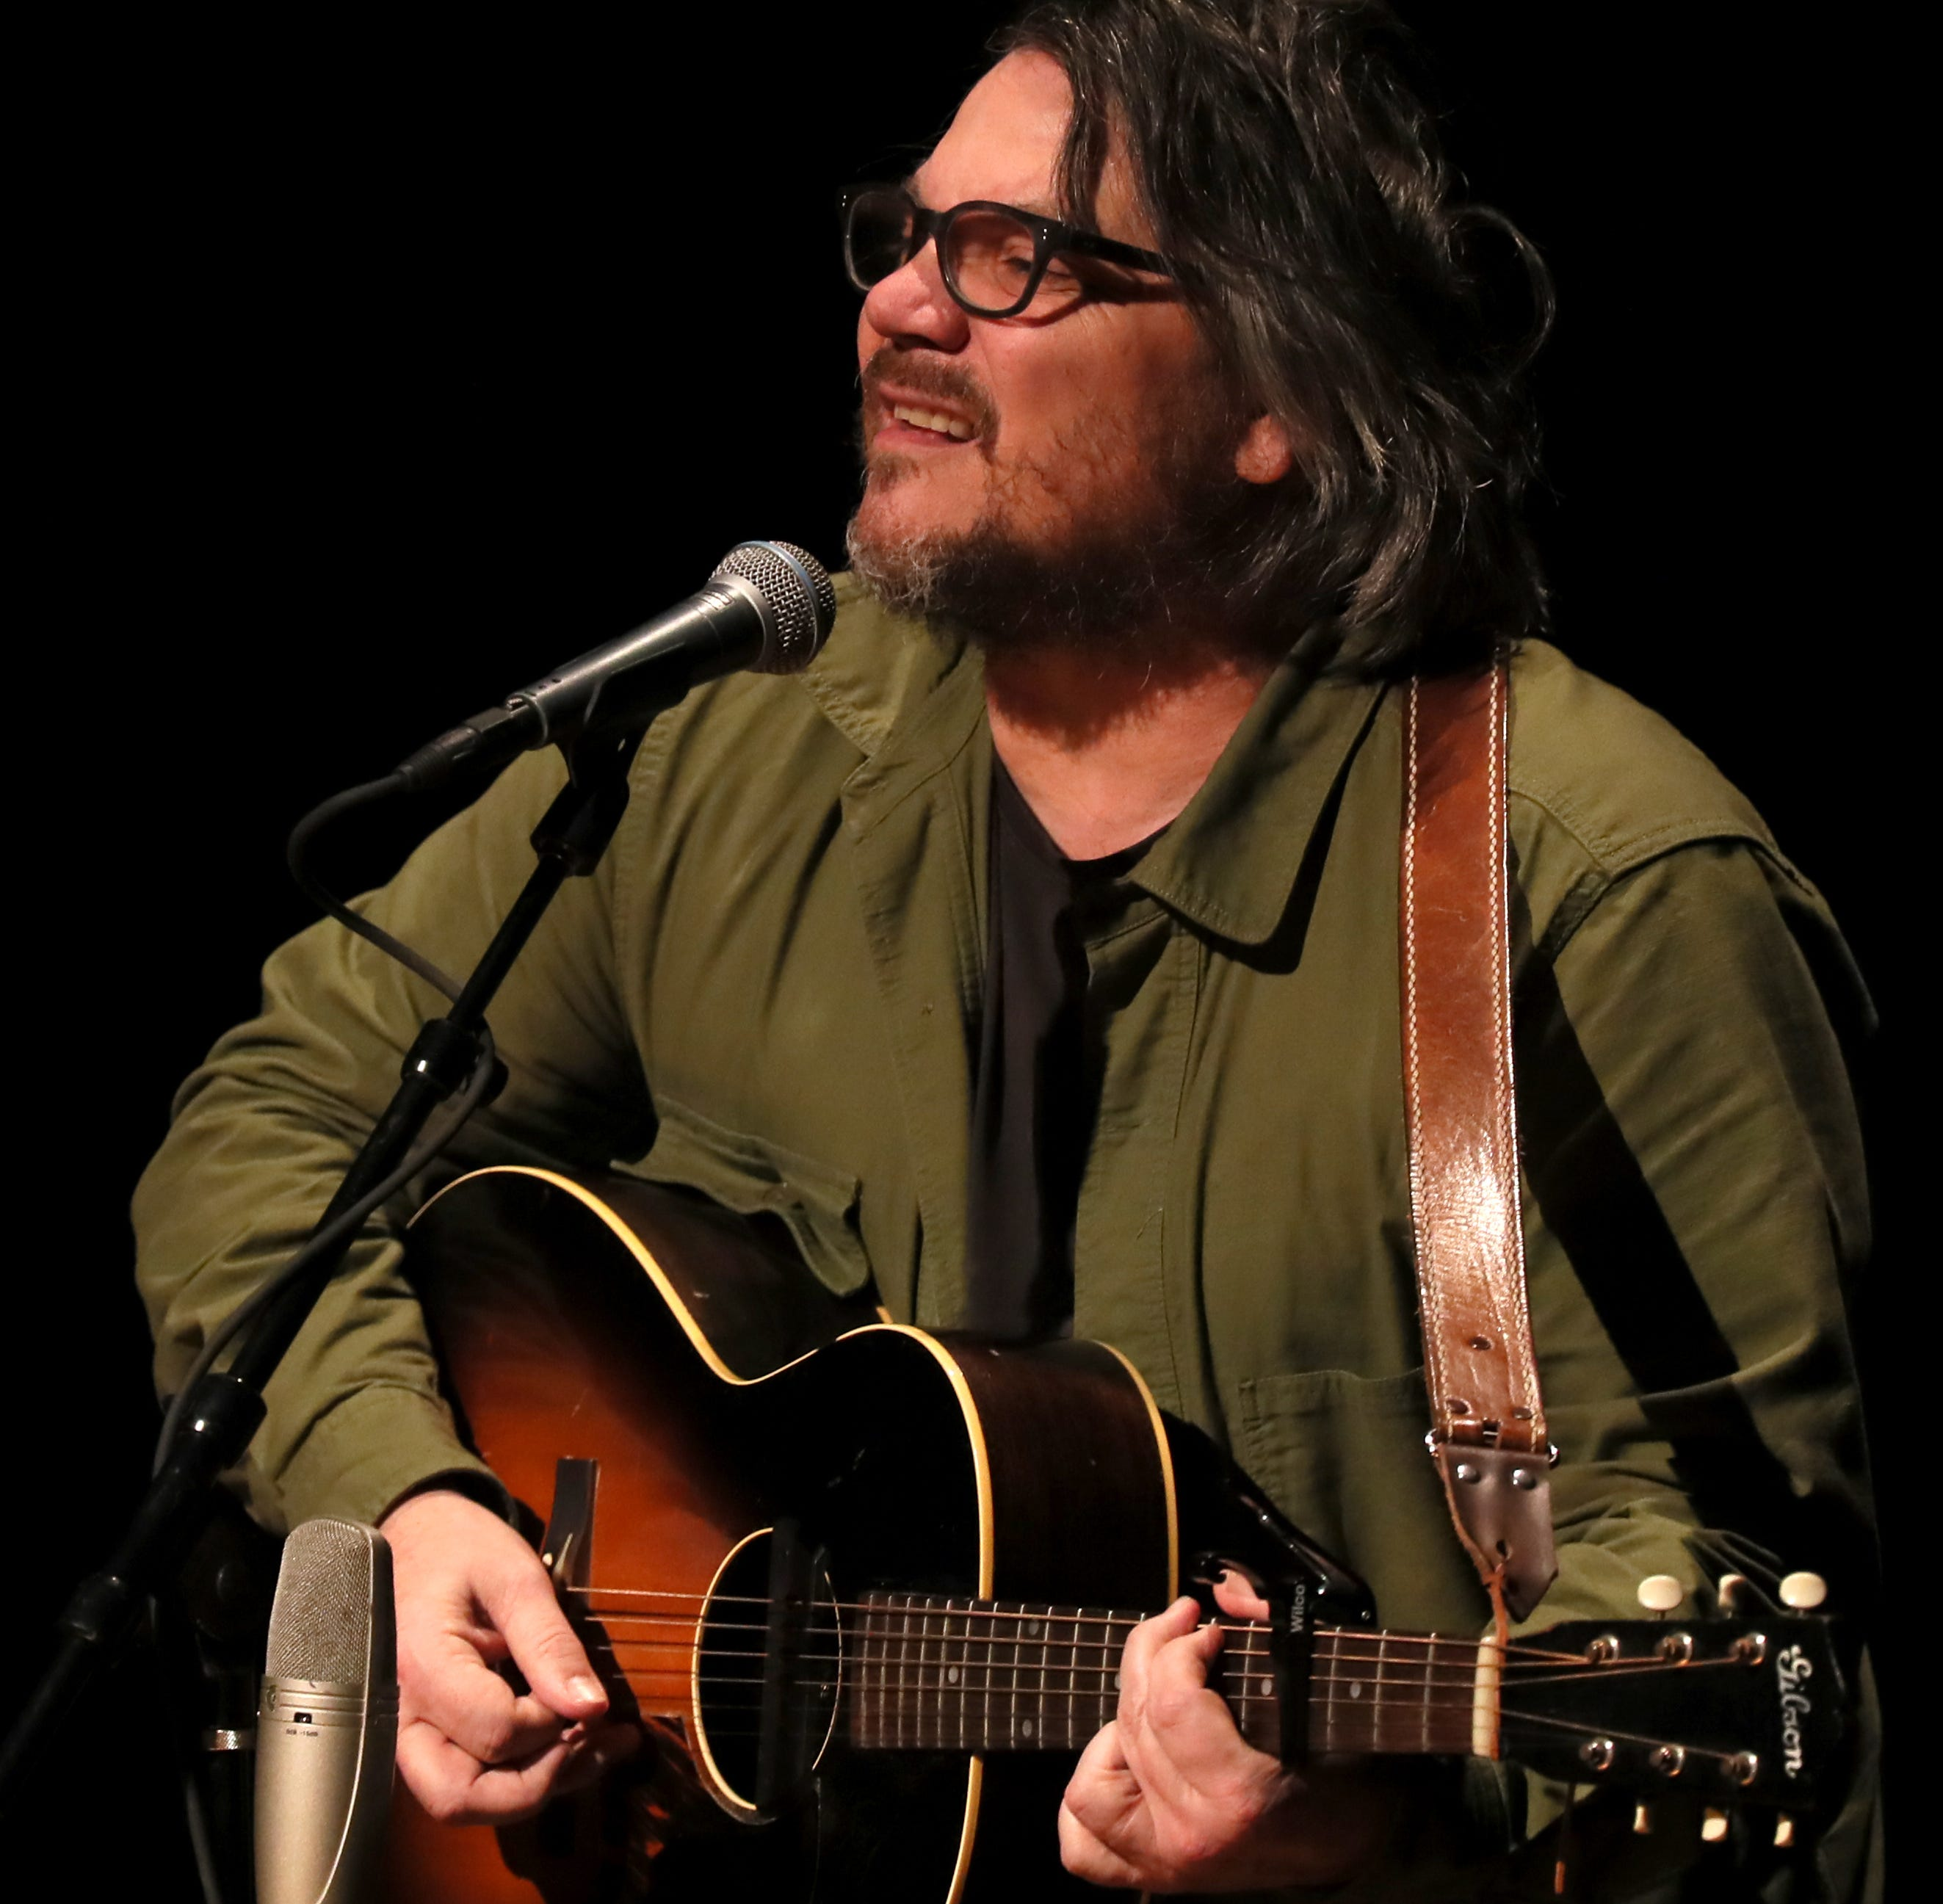 Wilco's Jeff Tweedy delivers three decades worth of songs at sold-out GPAC concert